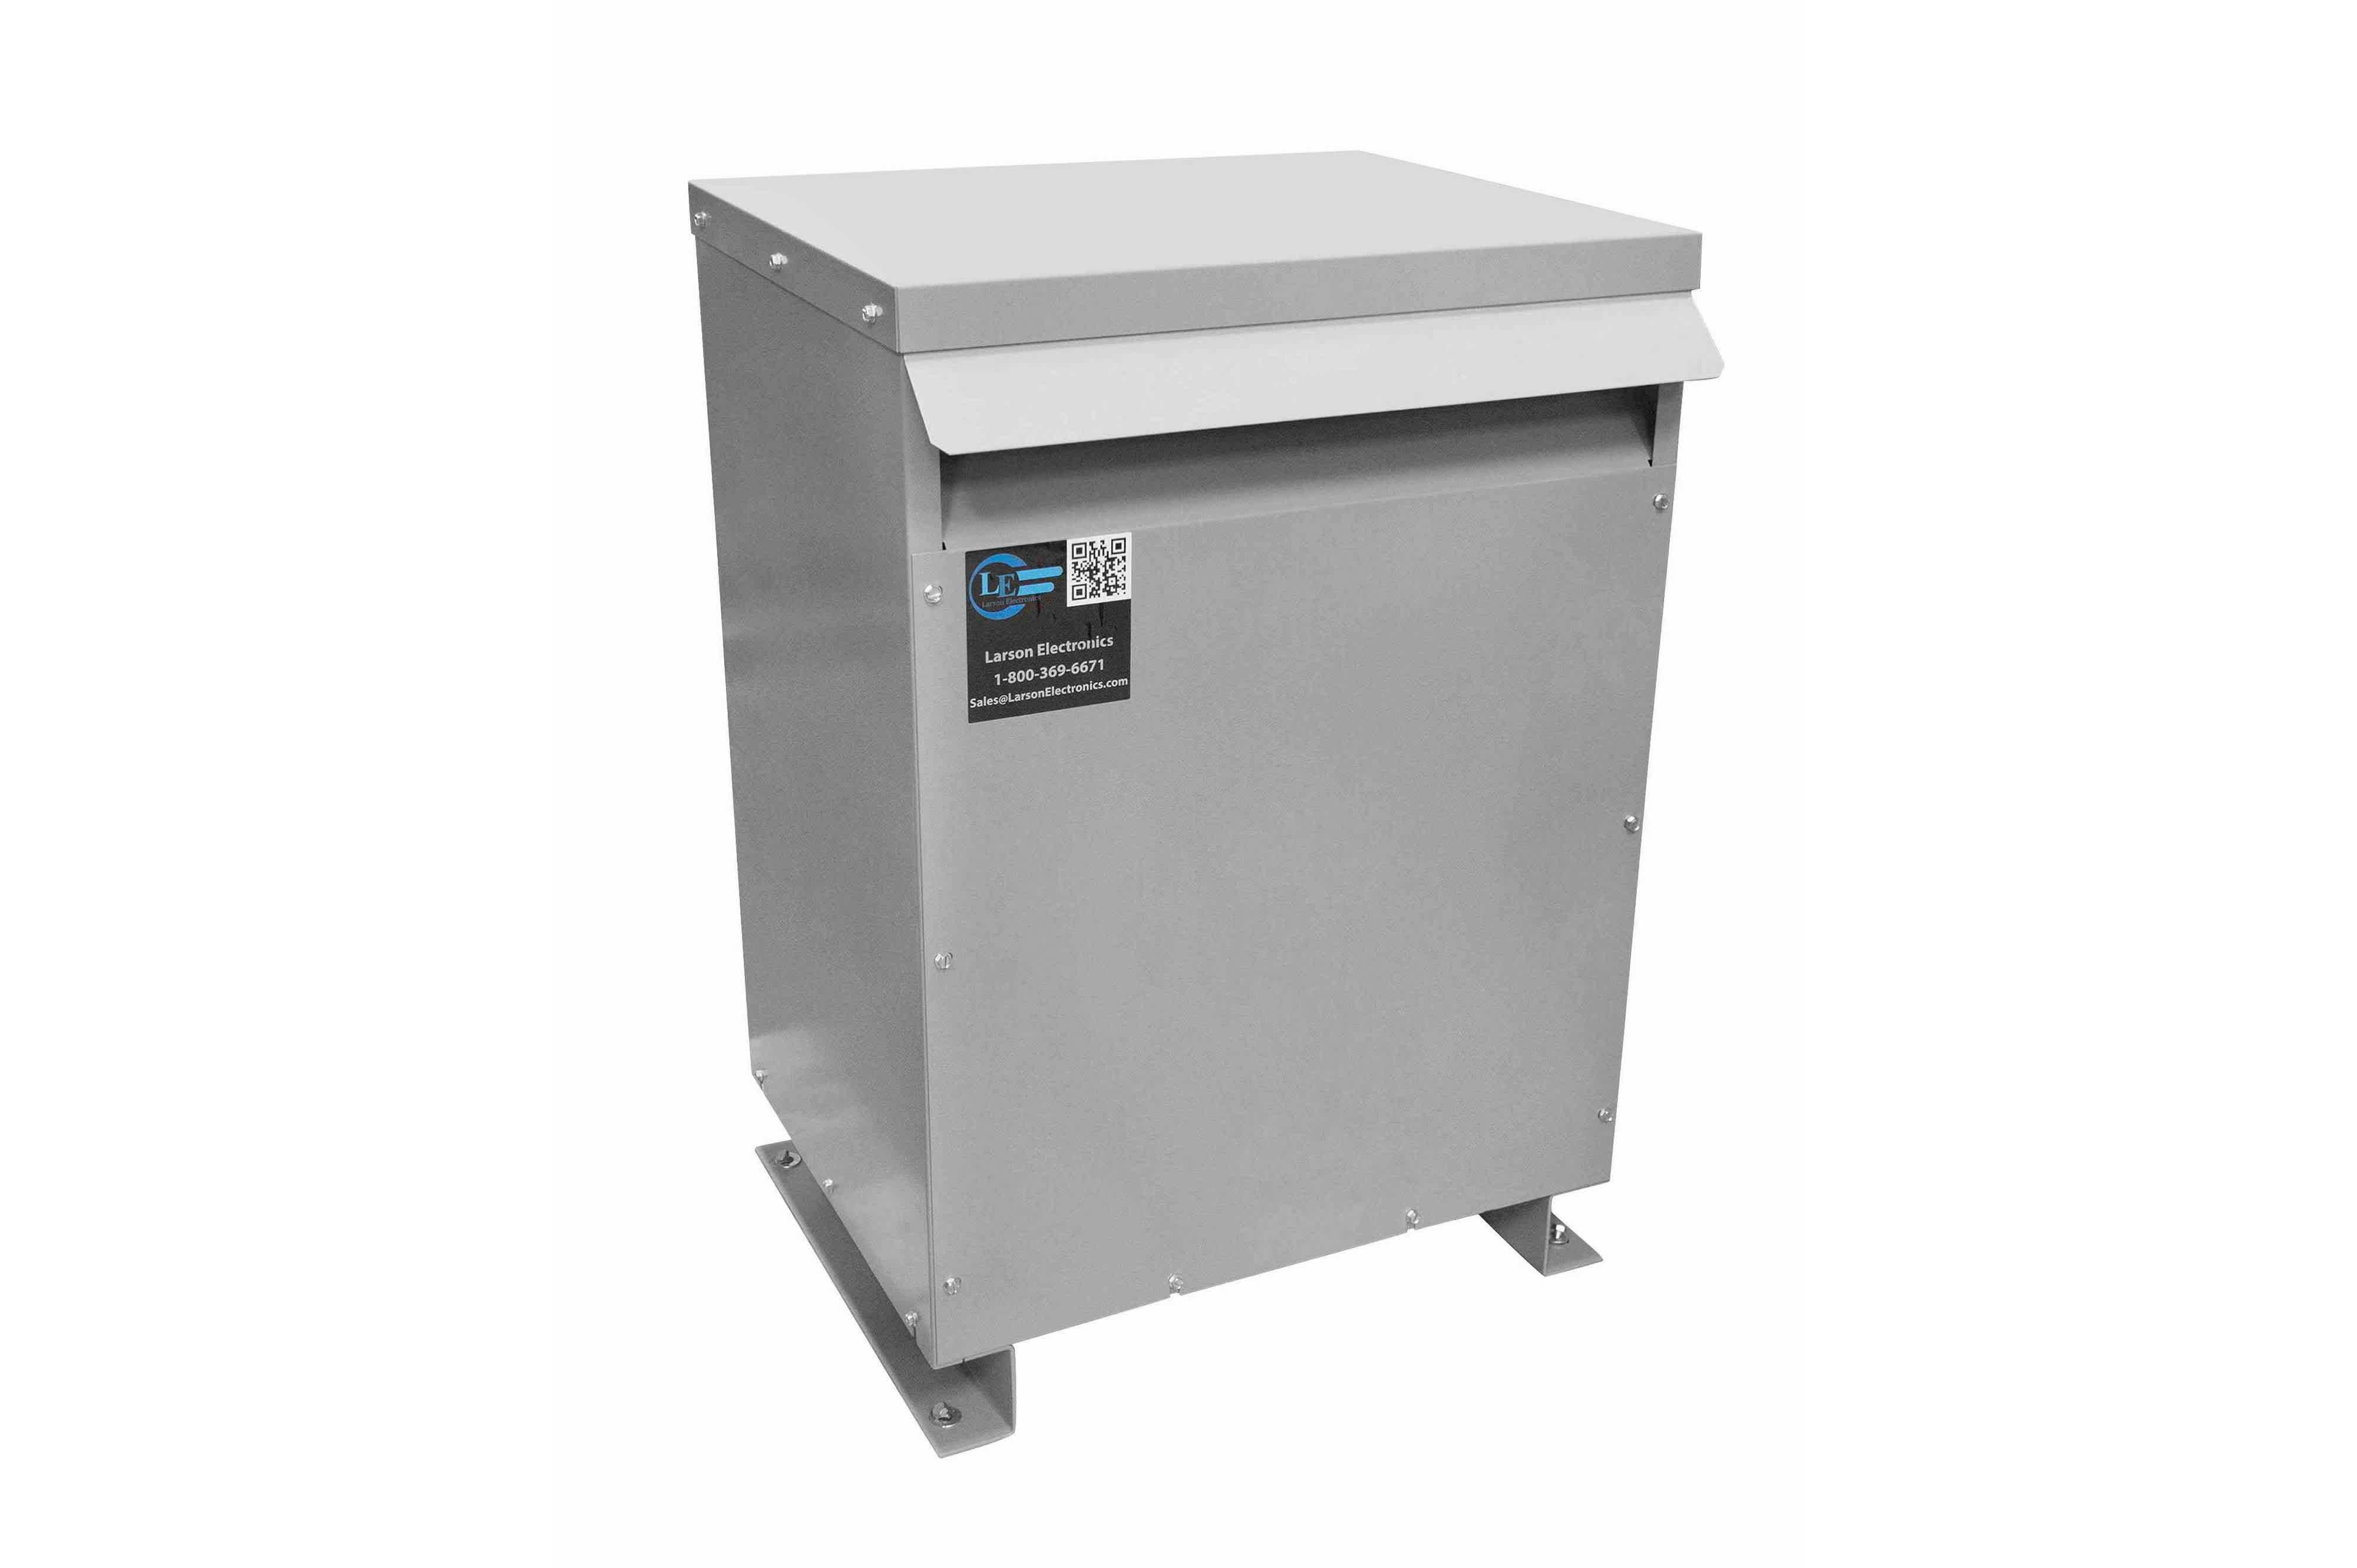 55 kVA 3PH Isolation Transformer, 440V Delta Primary, 240 Delta Secondary, N3R, Ventilated, 60 Hz